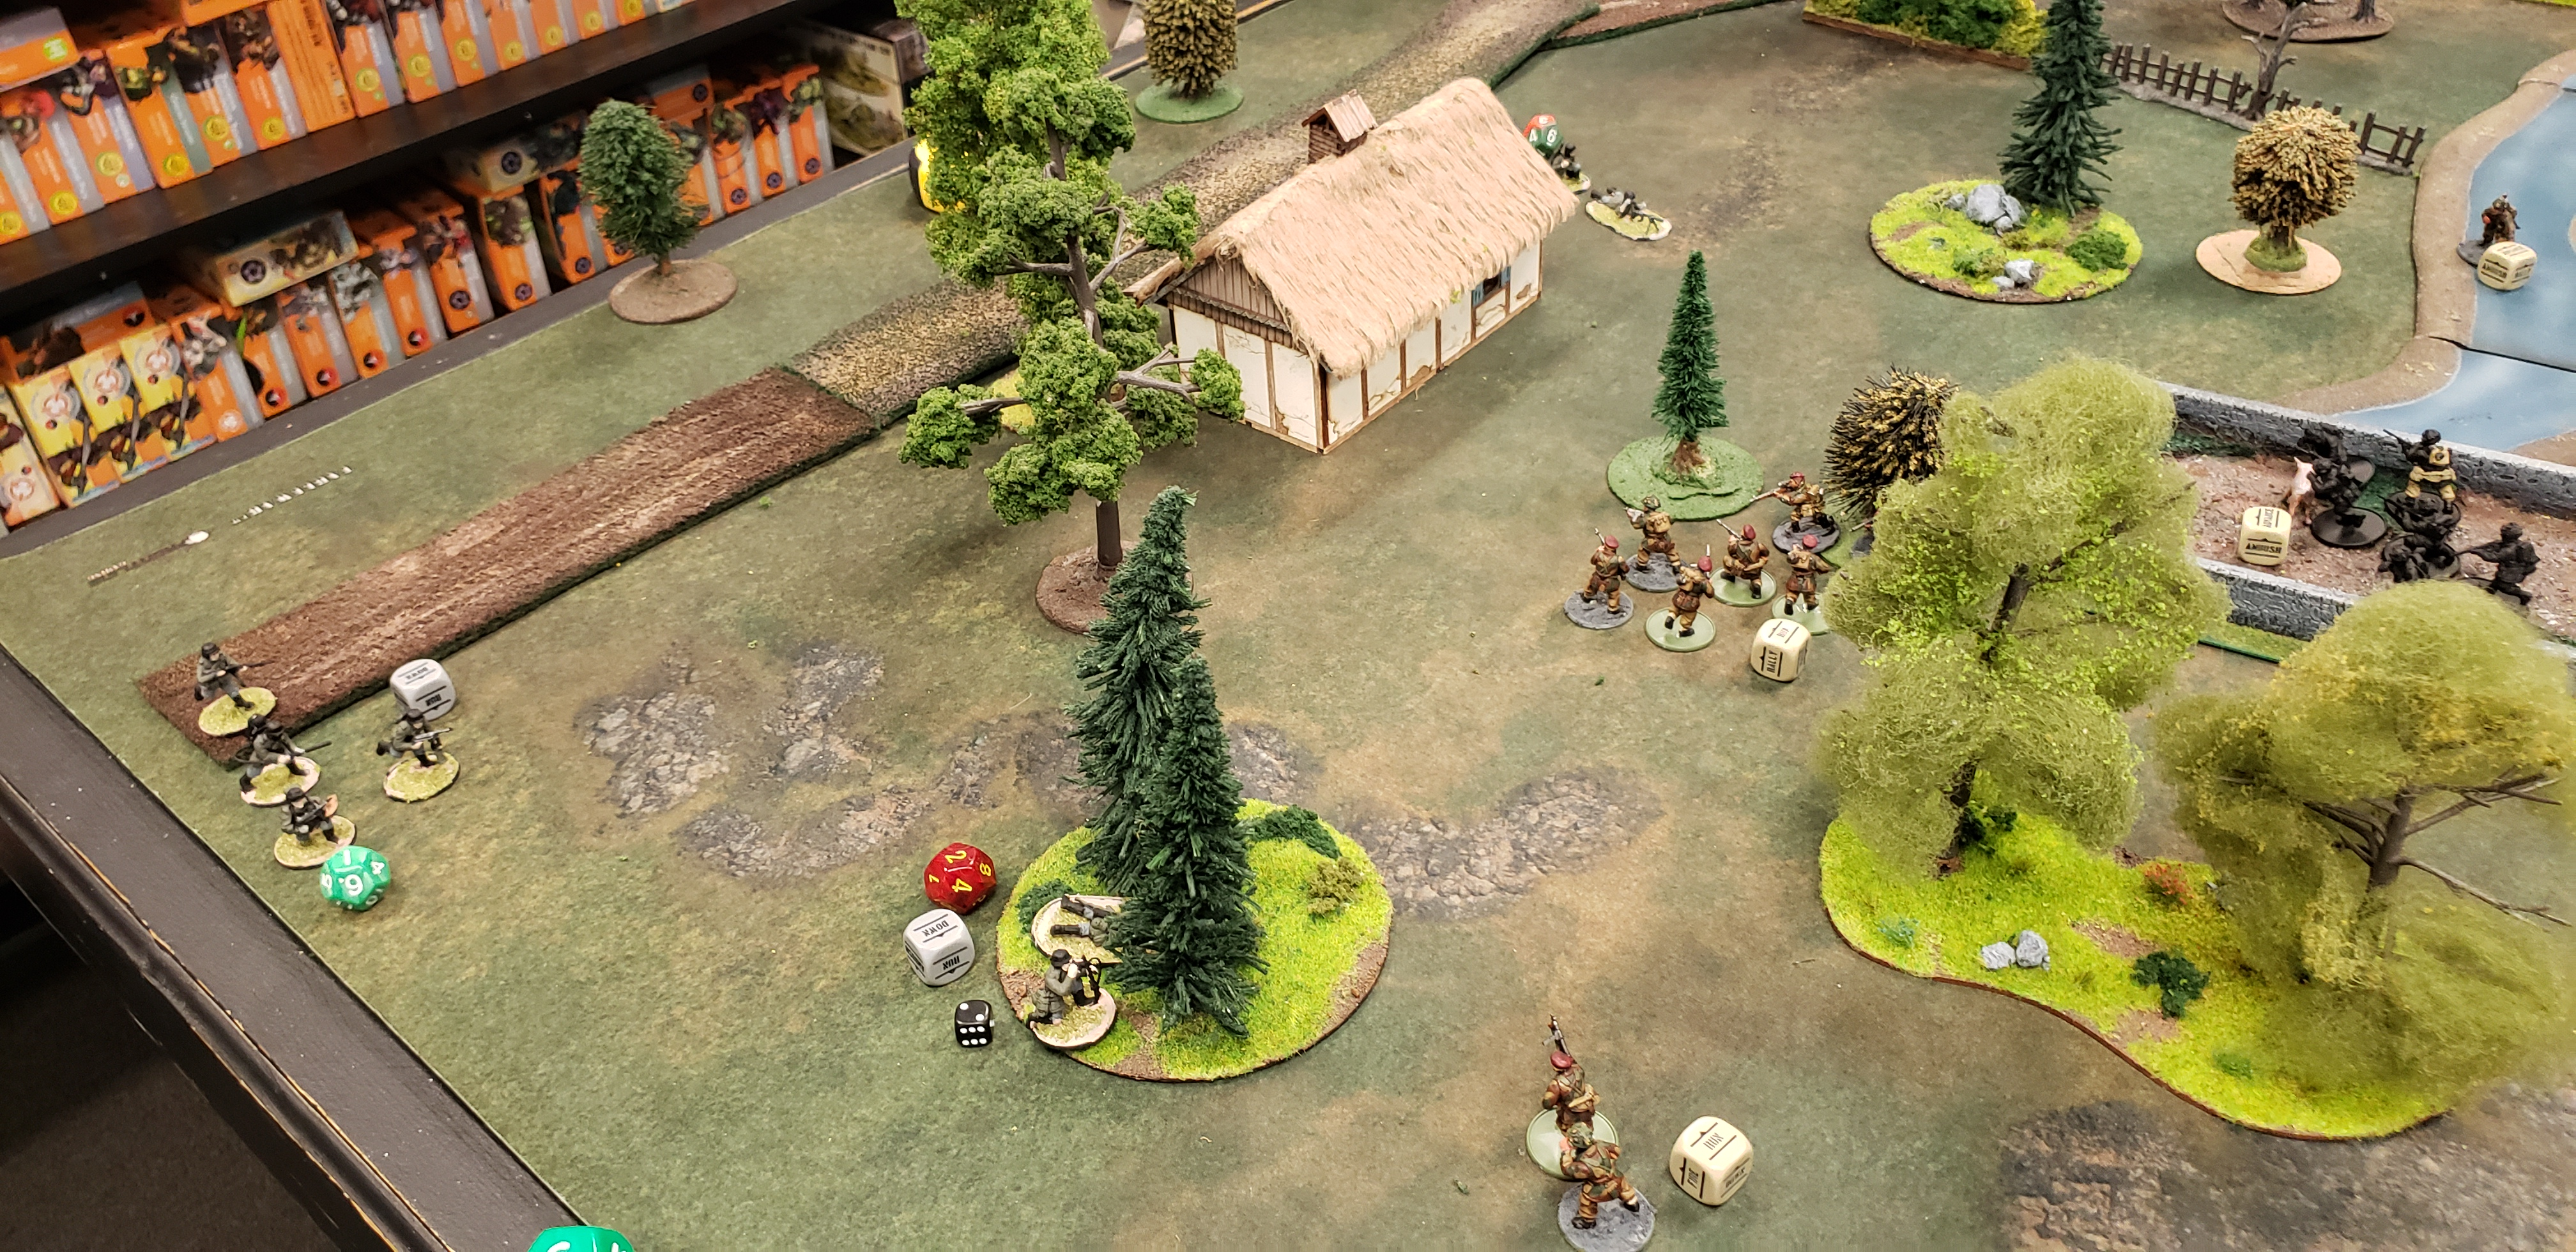 The Hounds versus 352nd Pionier Battalion in a fierce infantry engagement